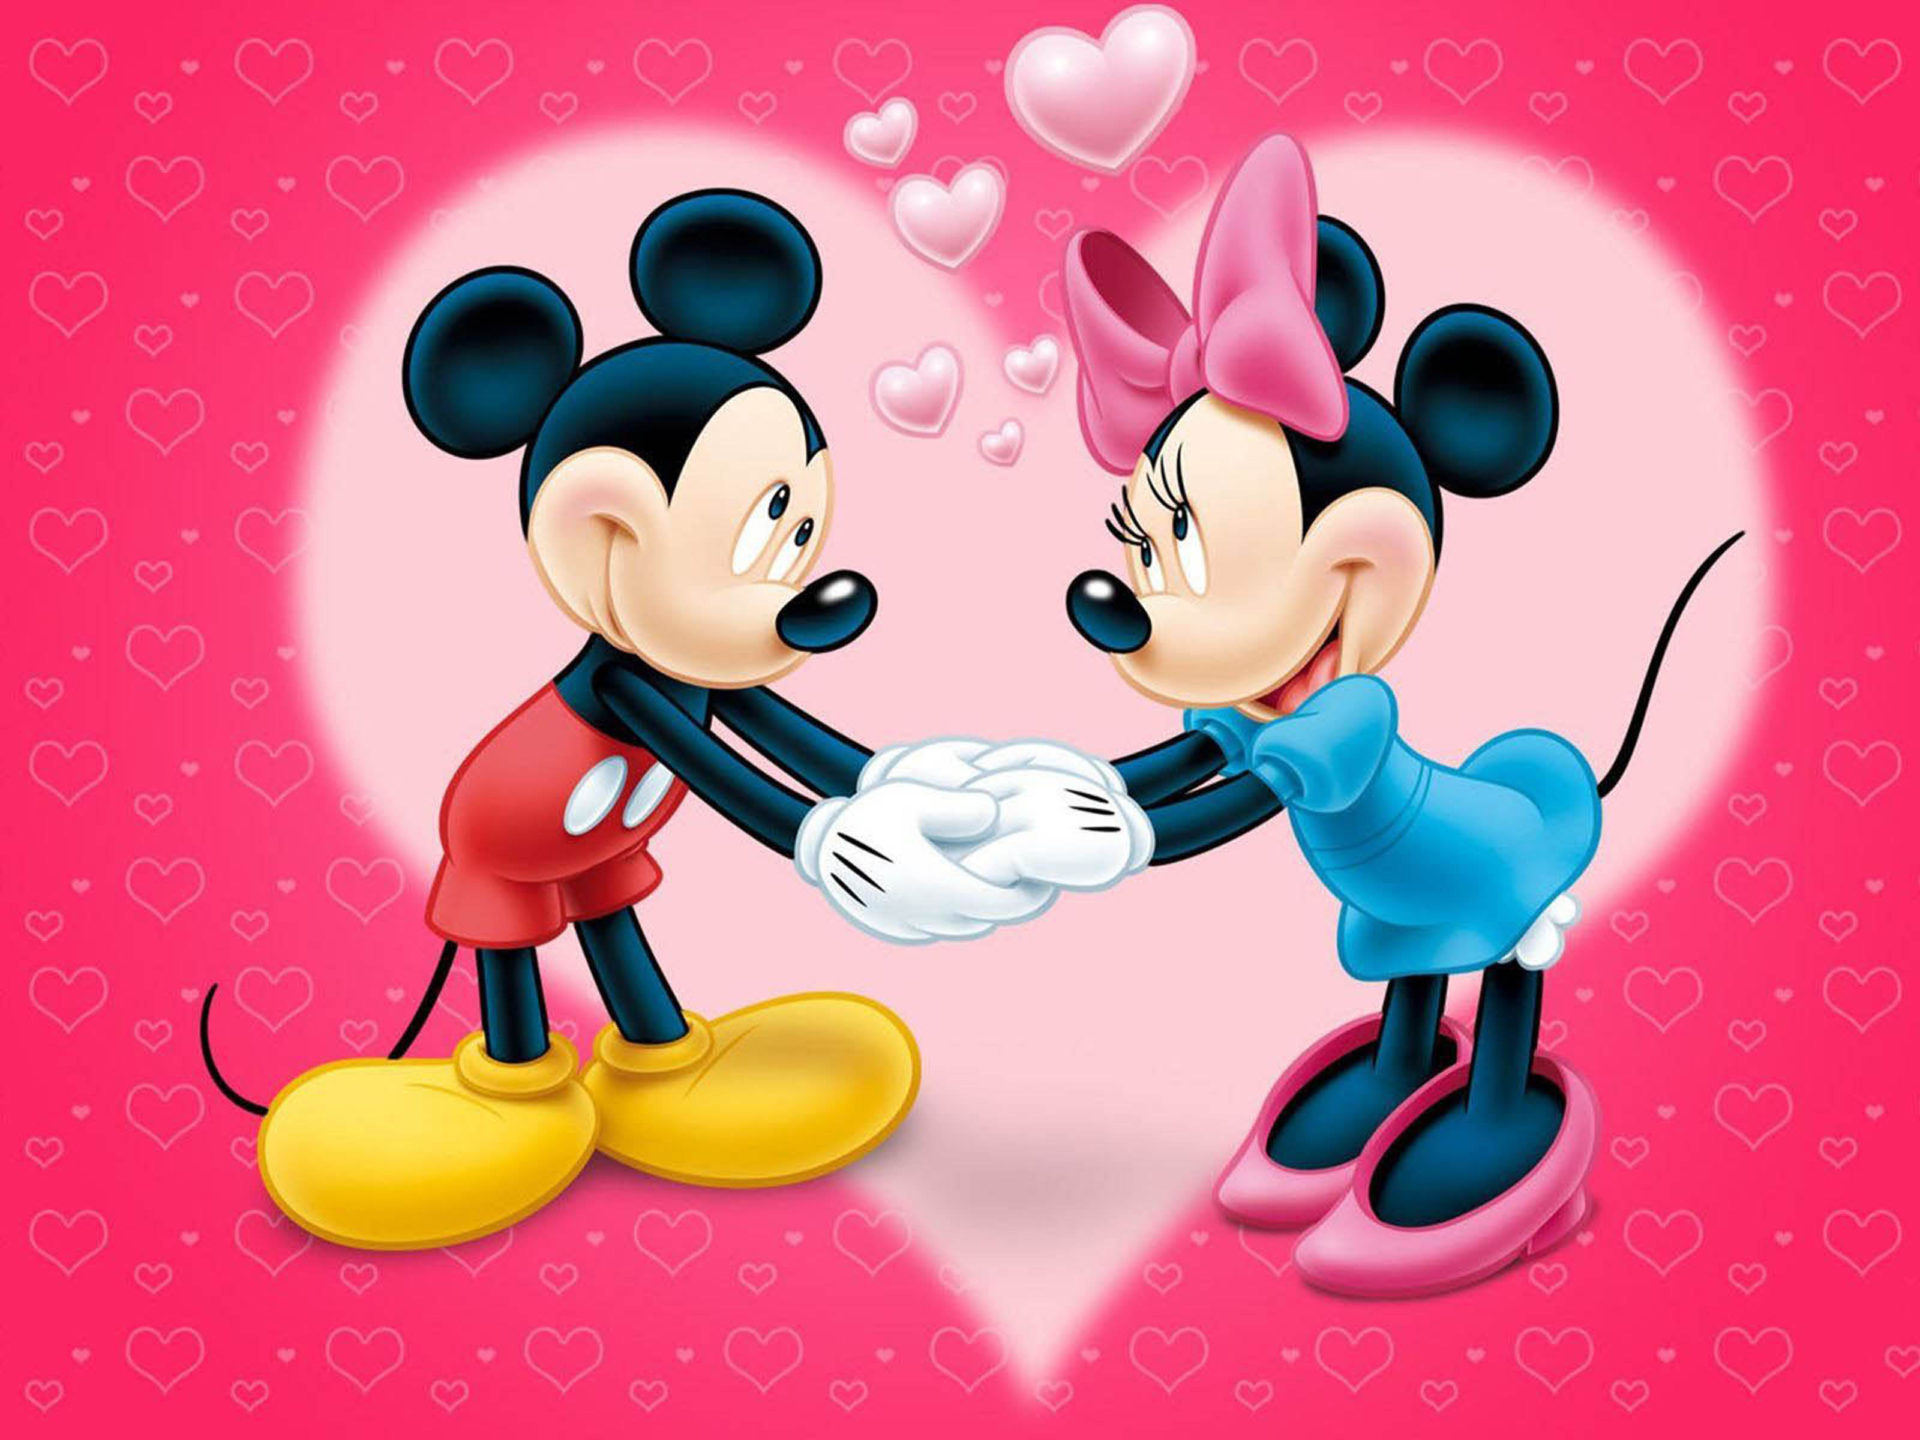 Cartoon Love Couple Hd Wallpapers Mickey And Minnie Mouse Love Couple Cartoon Red Wallpaper